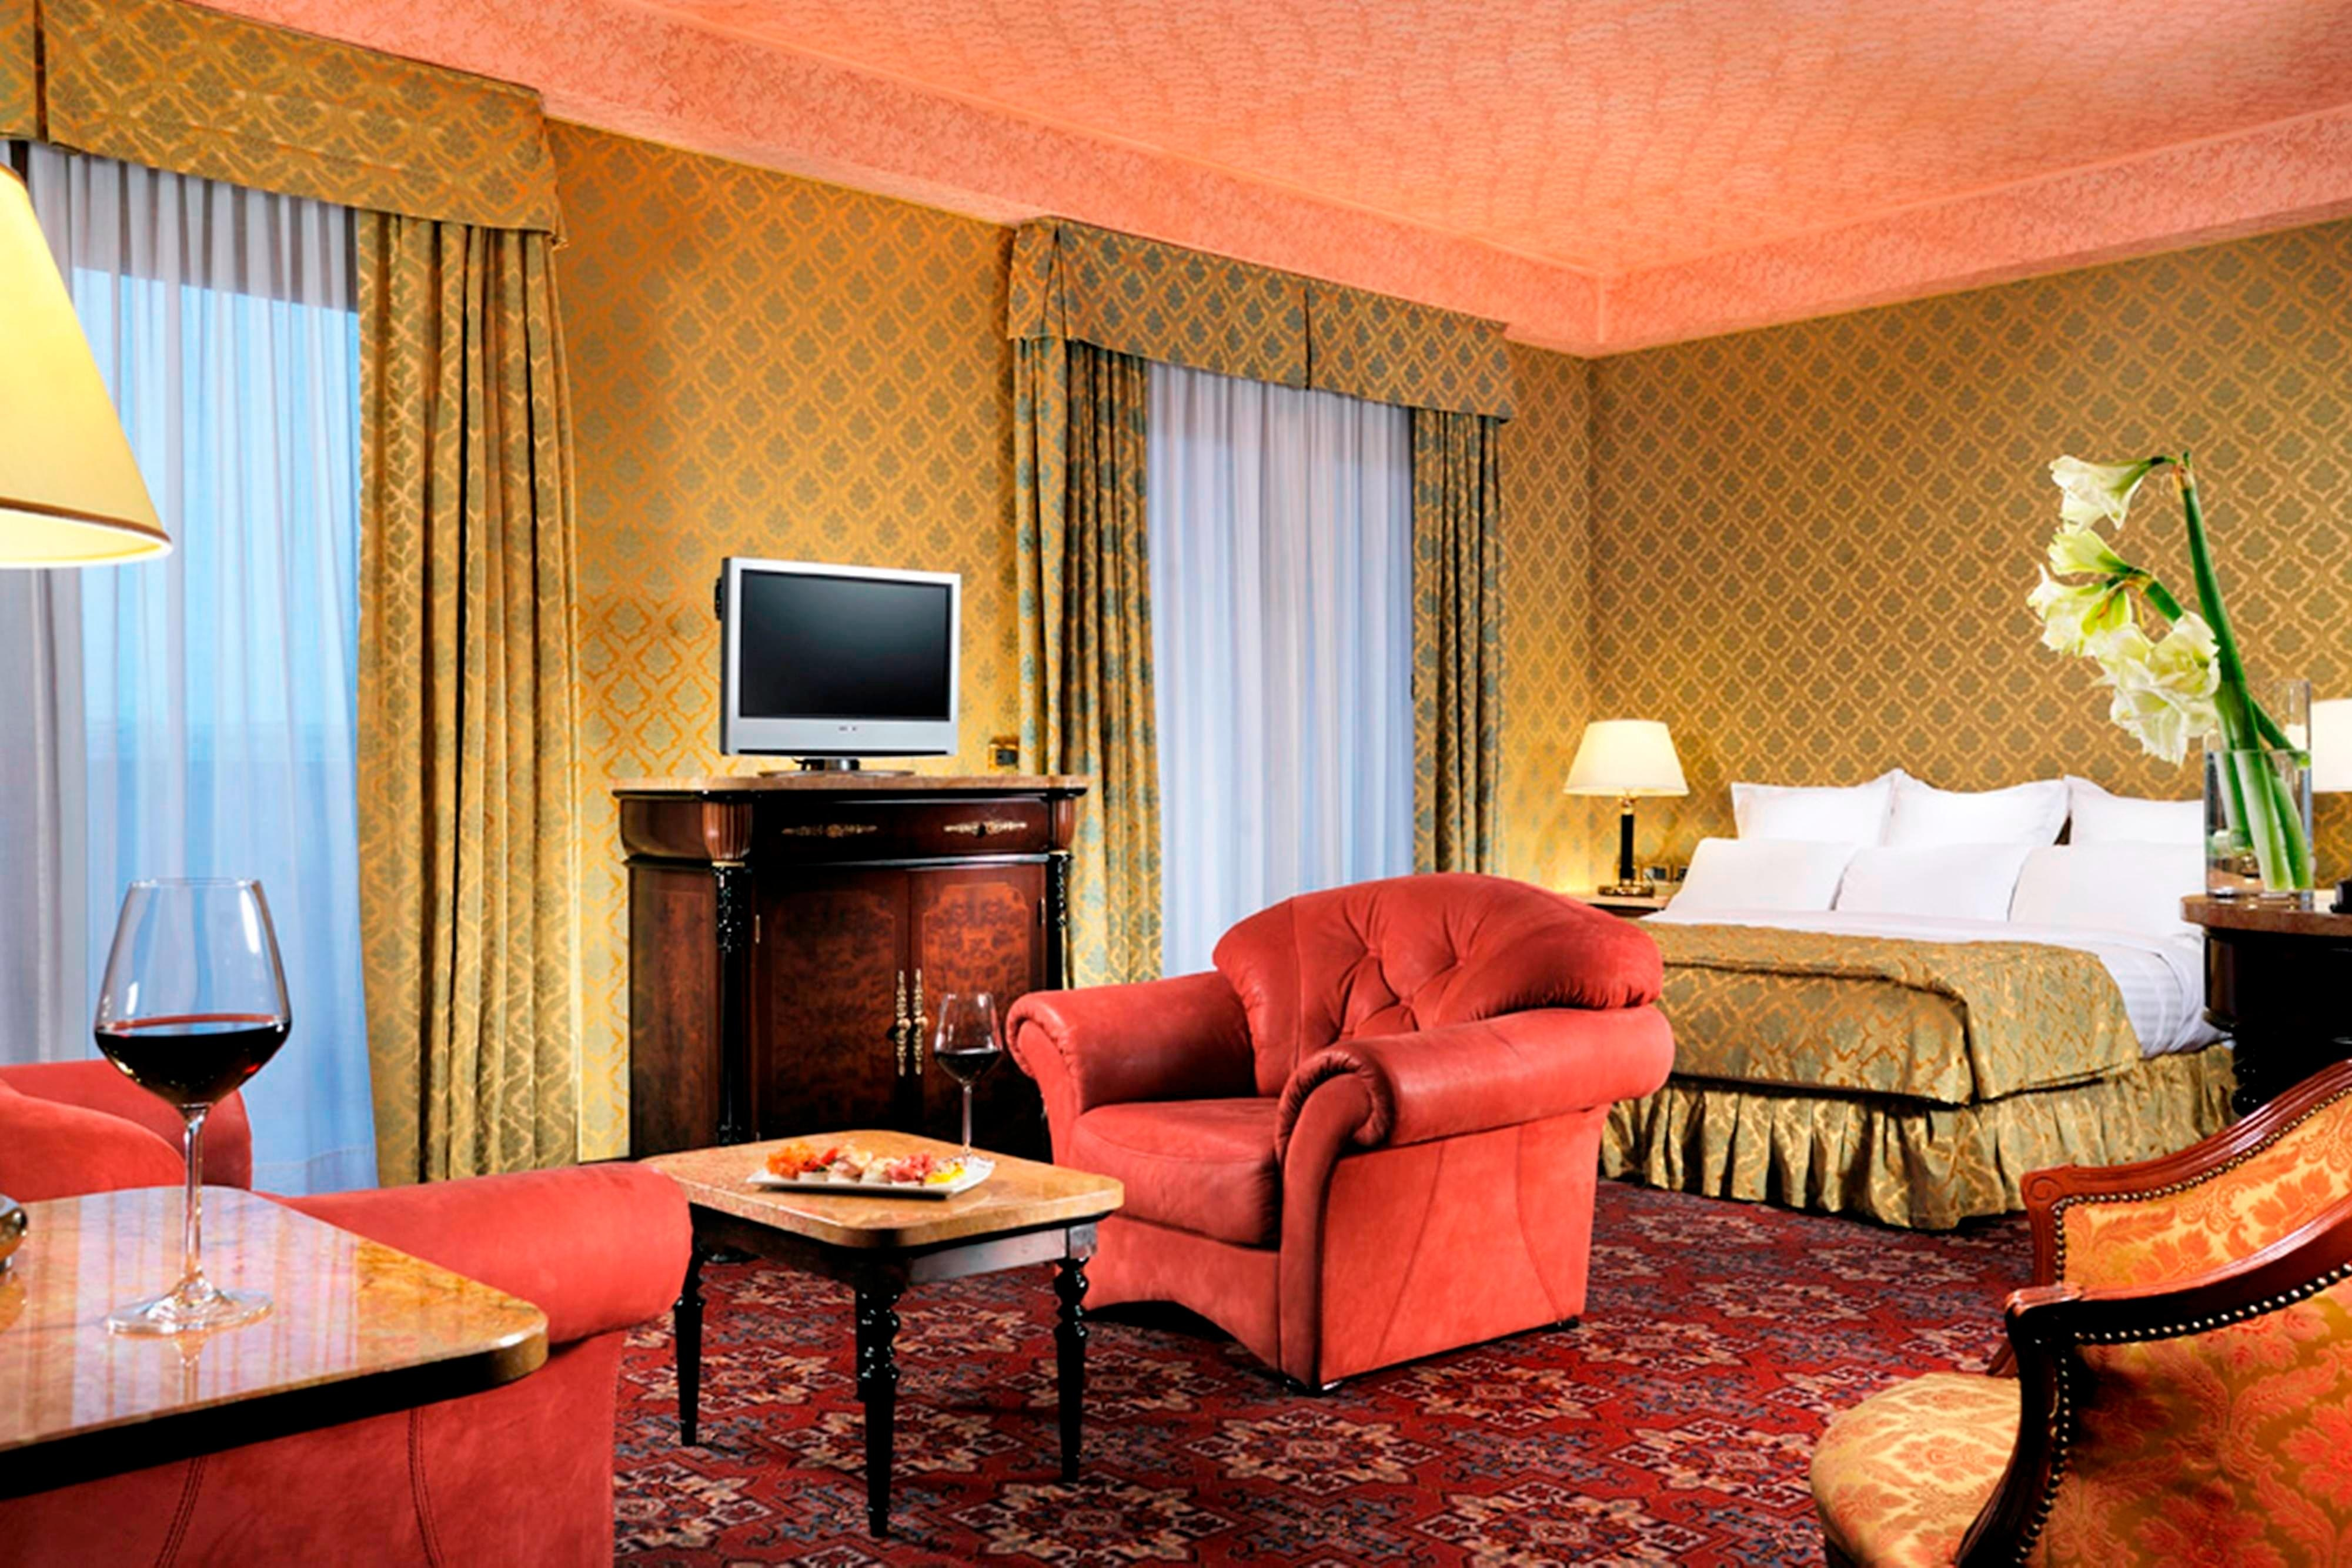 Milan Marriott Hotel Suite